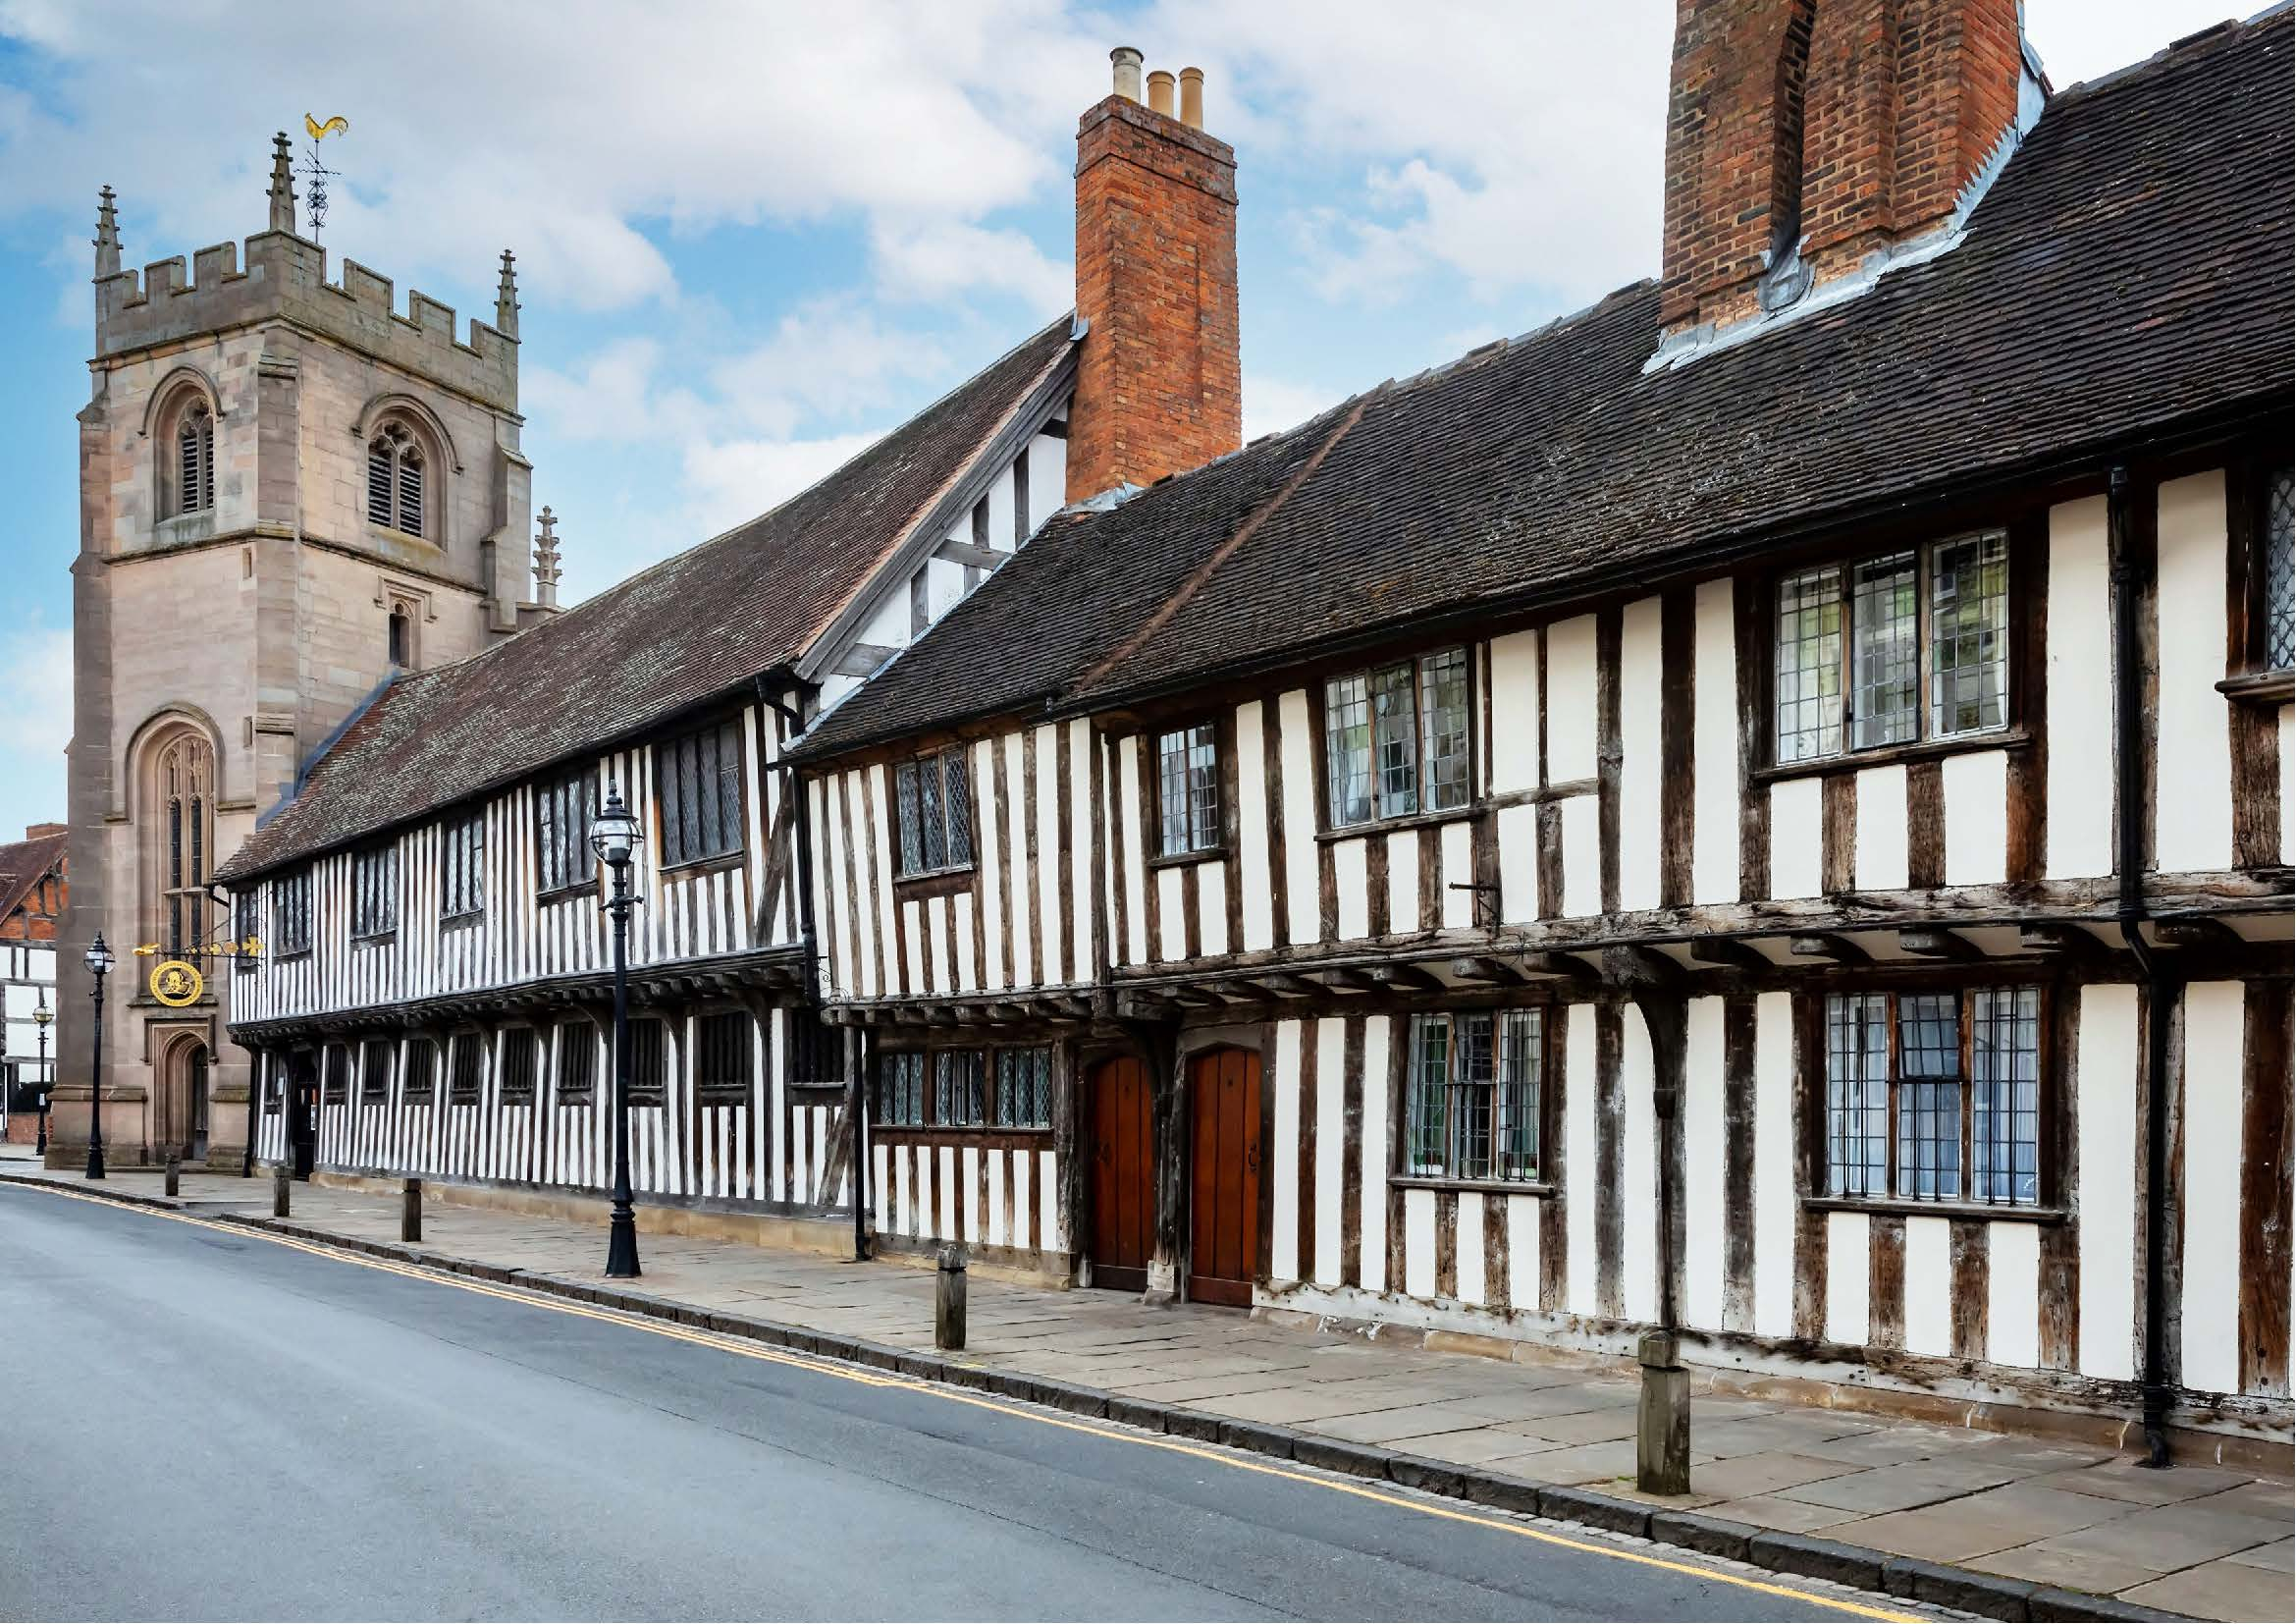 Shakespeare's Schoolroom and Guildhall 5